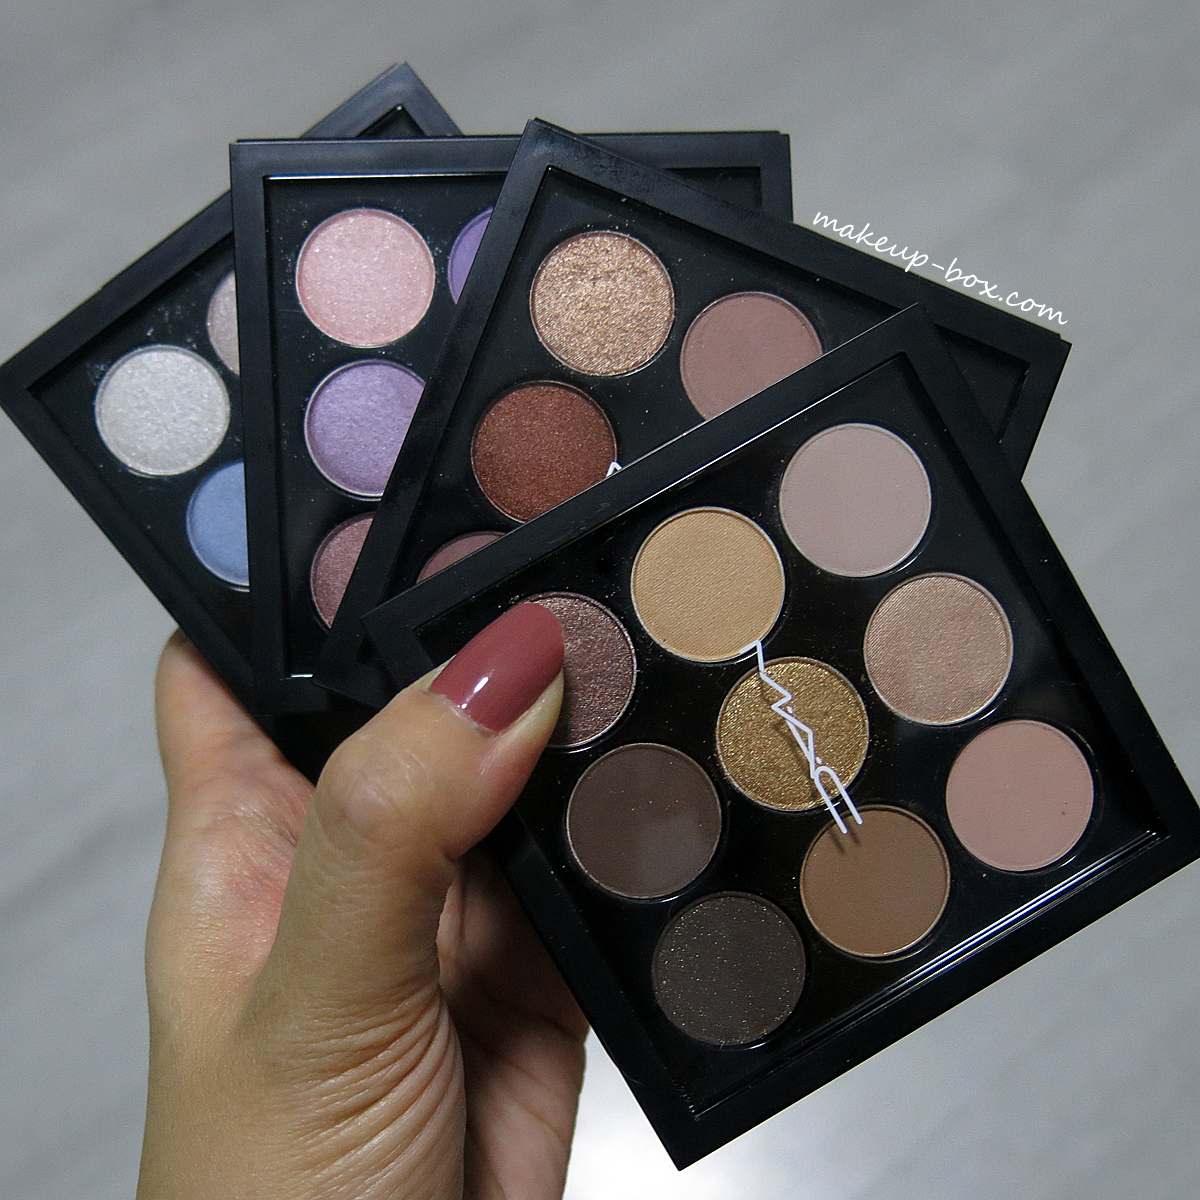 the makeup box mac eyeshadow times nine palette swatches. Black Bedroom Furniture Sets. Home Design Ideas